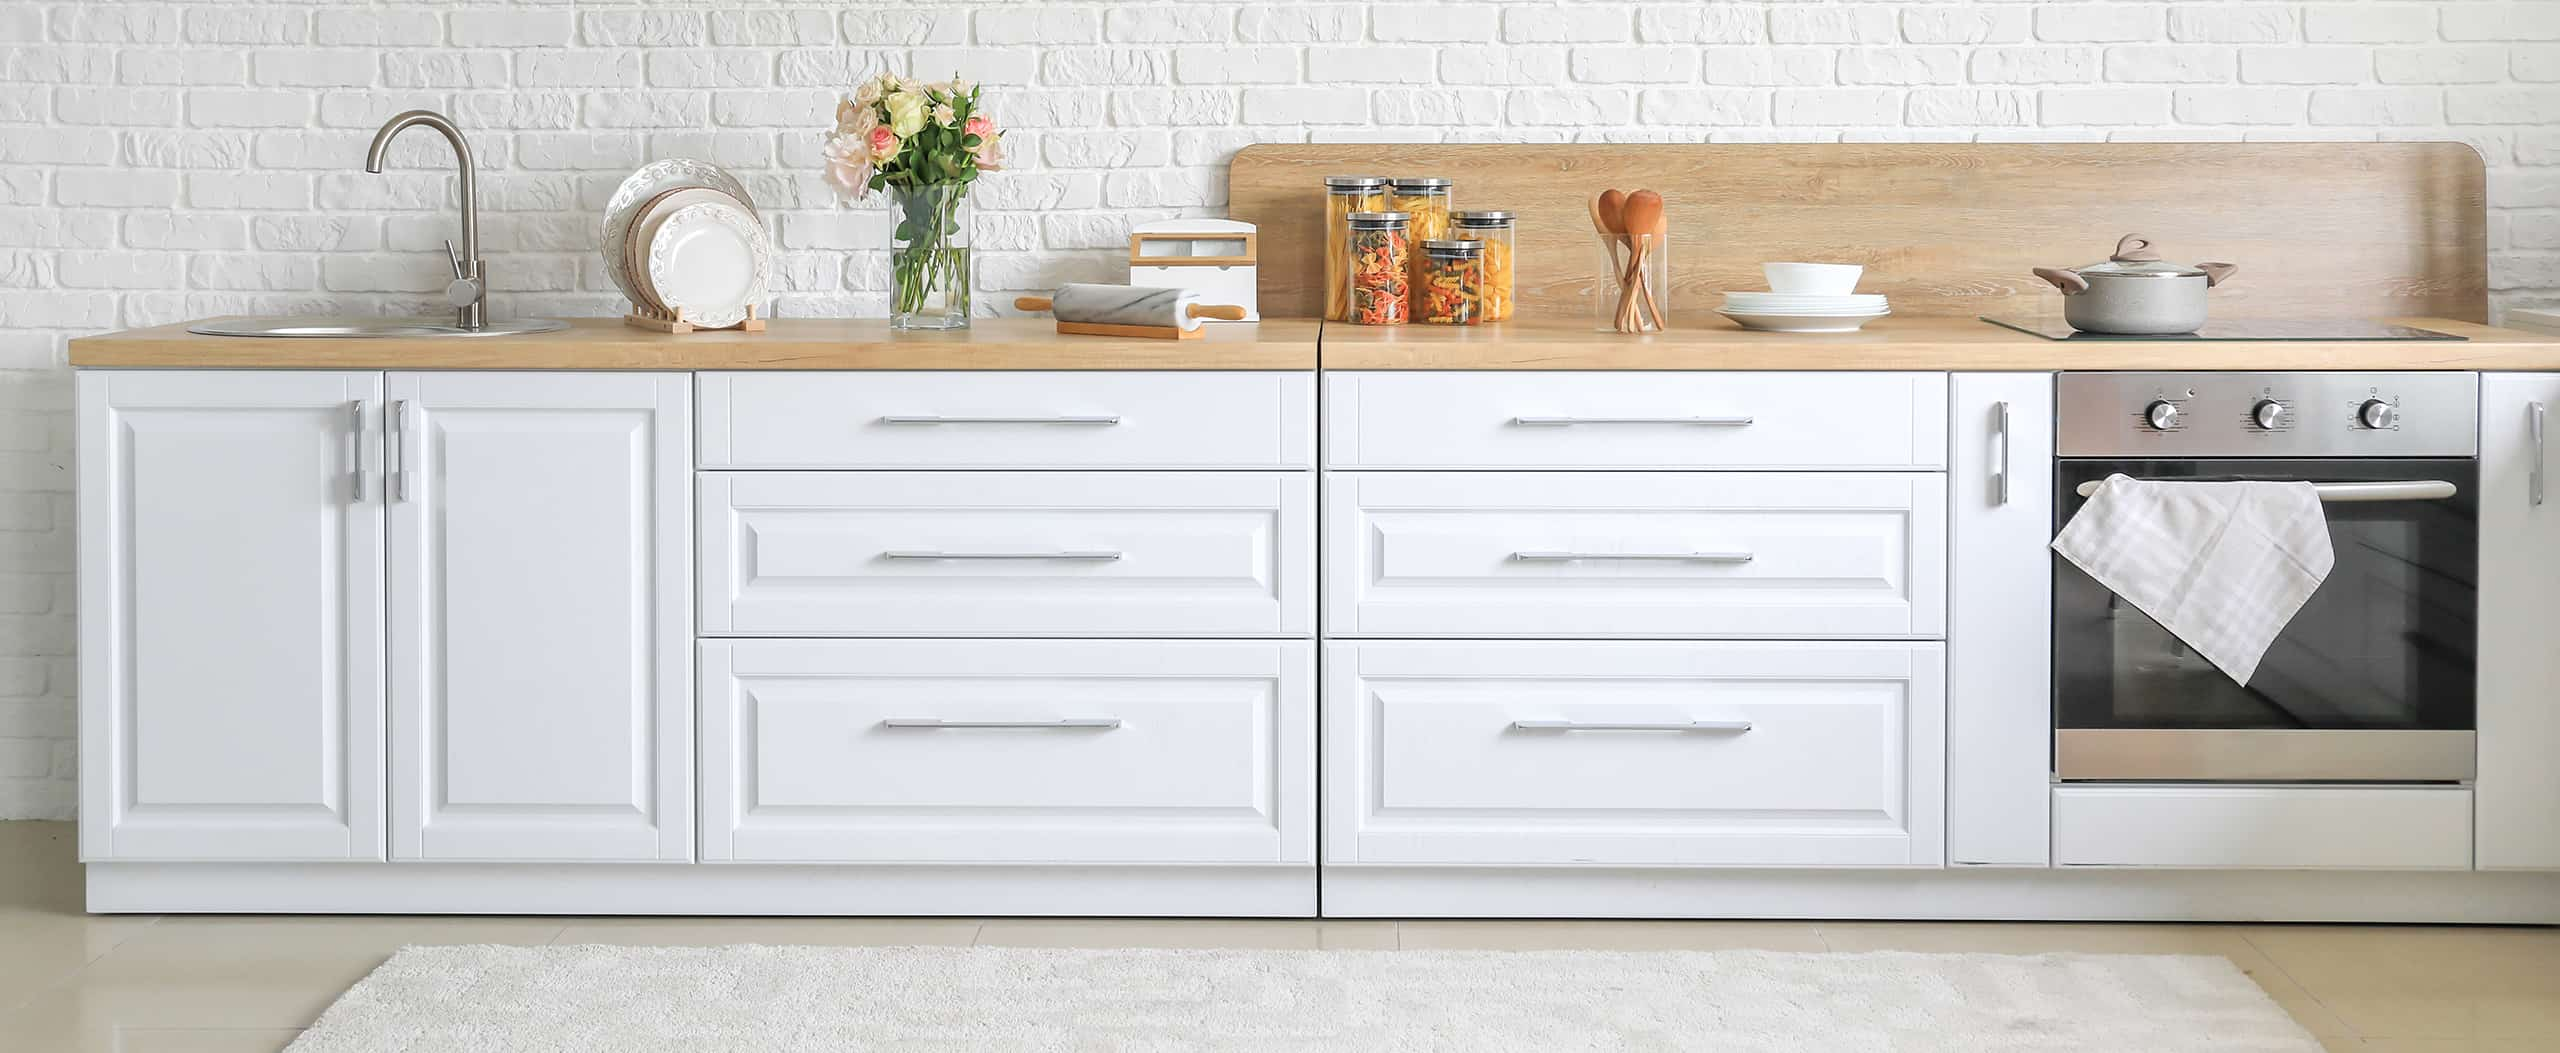 Stylish modern kitchen featuring cabinet handle pulls